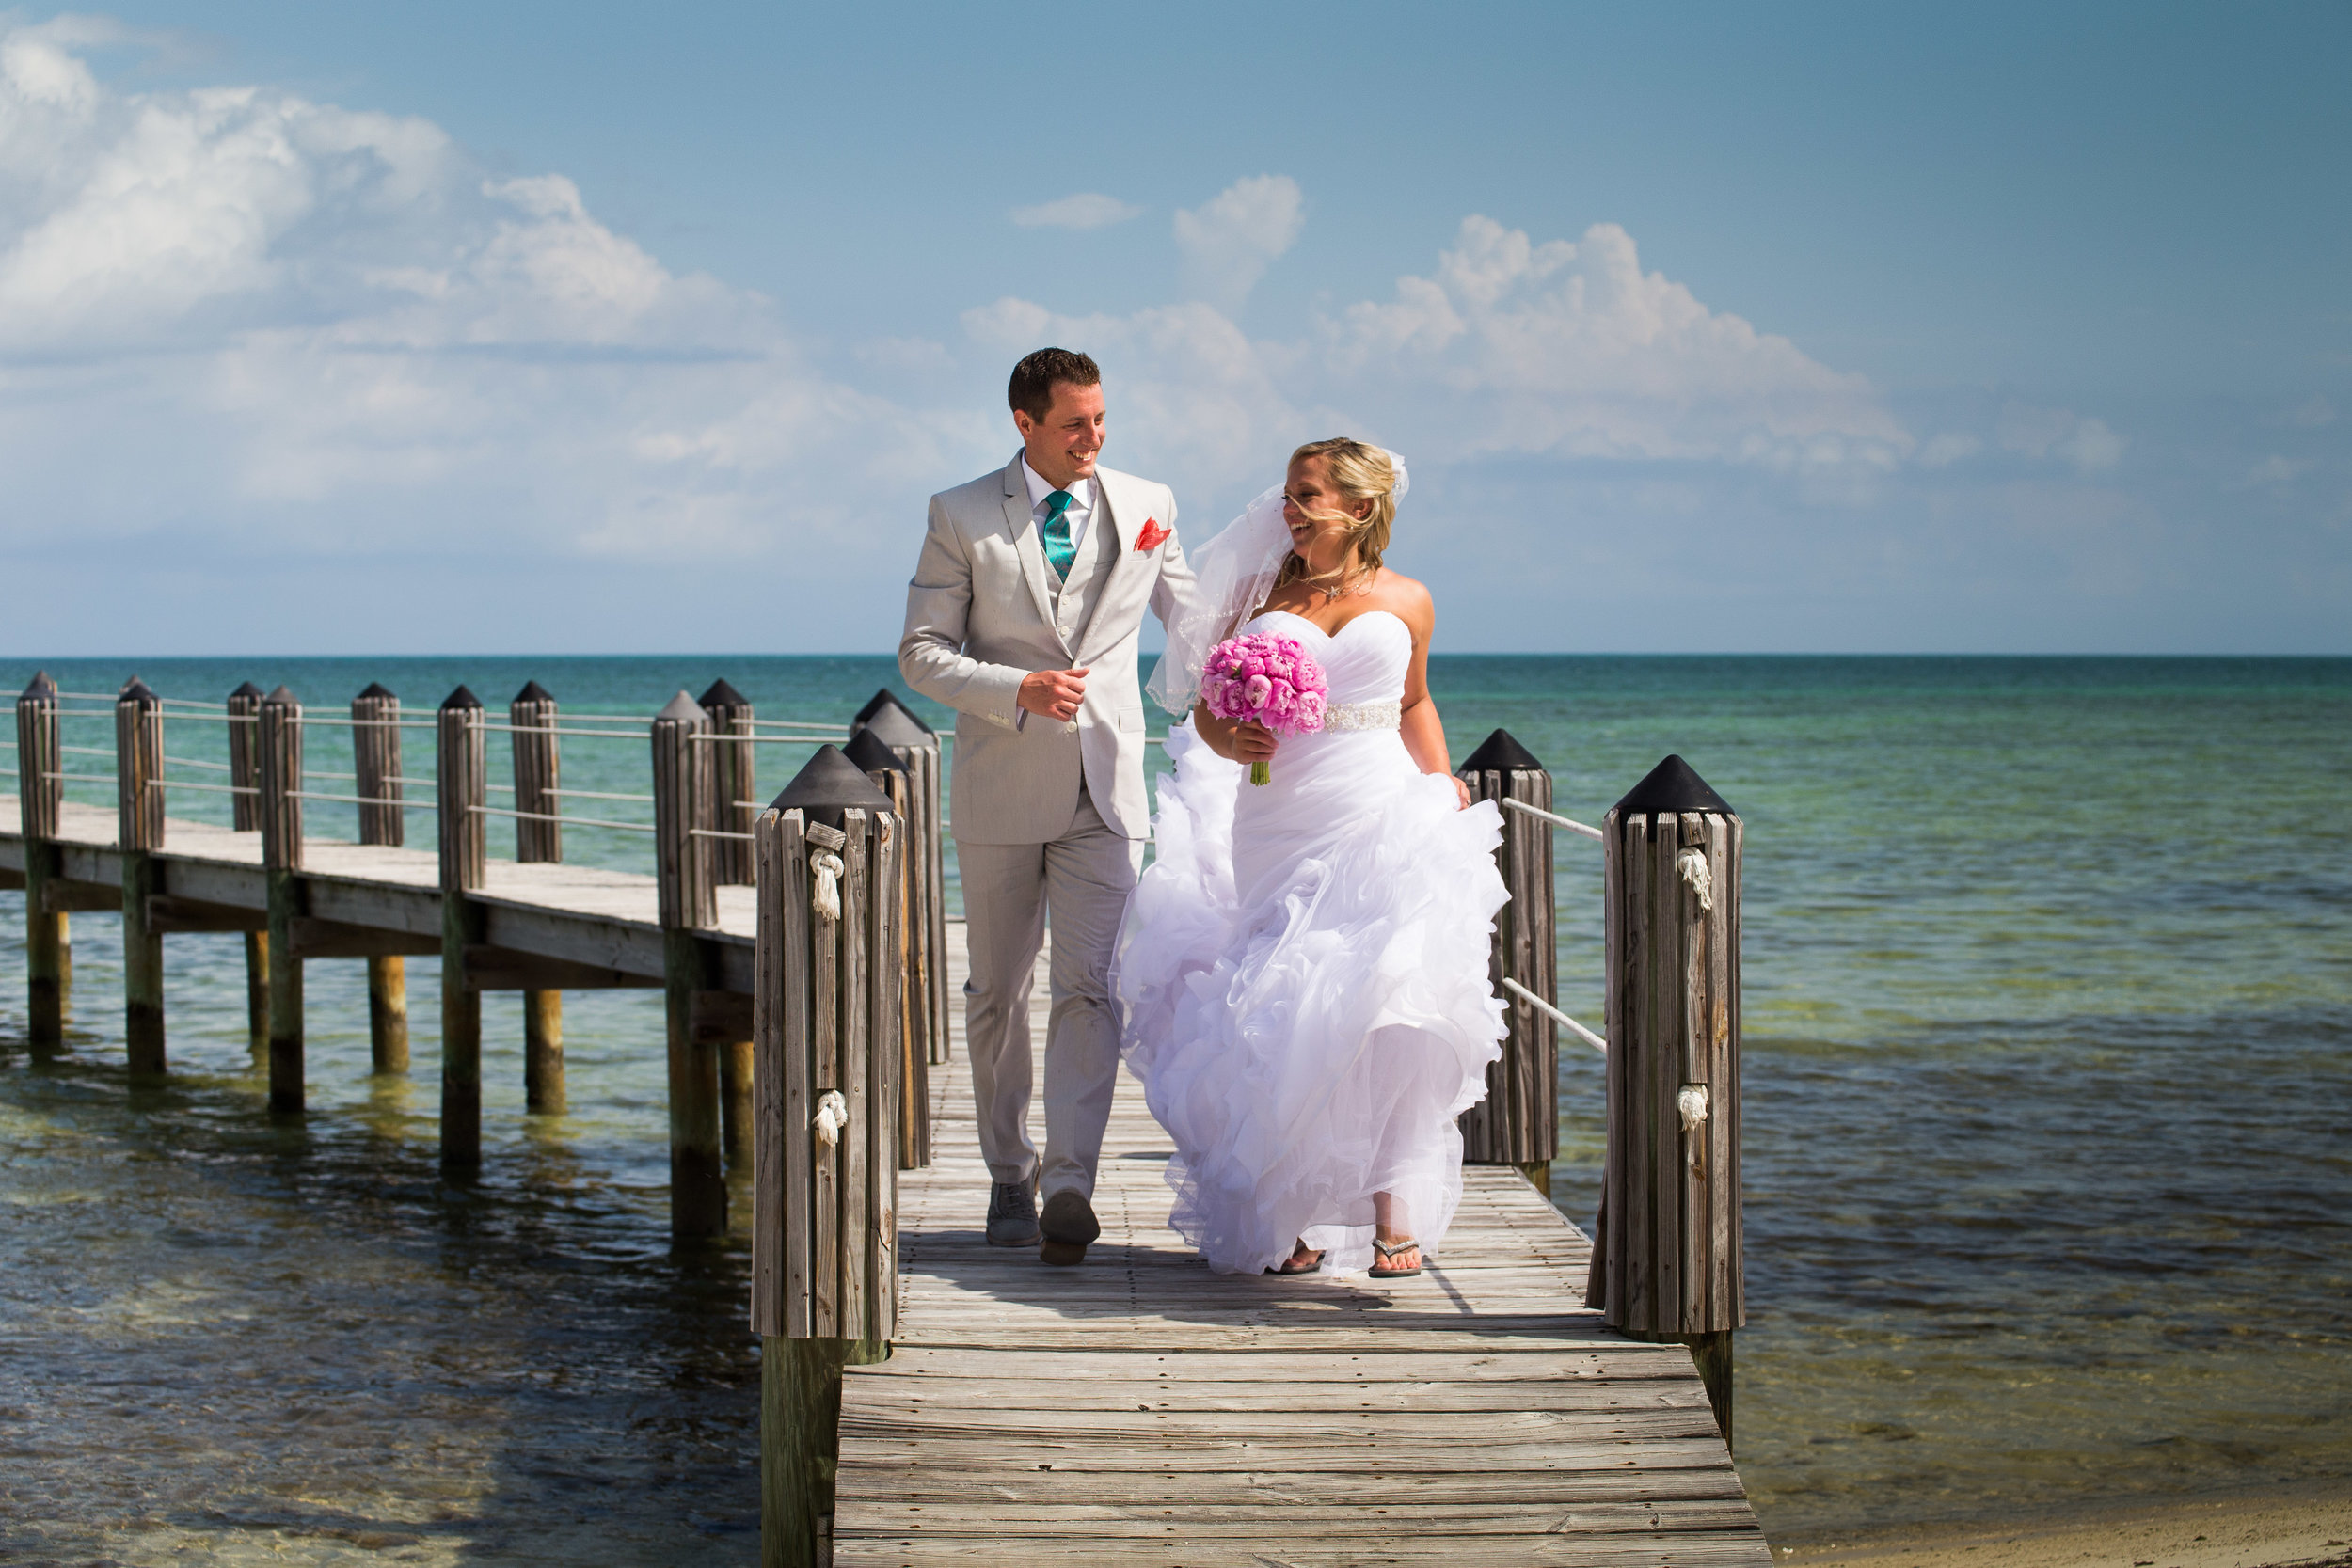 Her hair was blowing in her face, but do you think this bride was thinking about that? No, she was having a blast running down the dock with the love of her life.